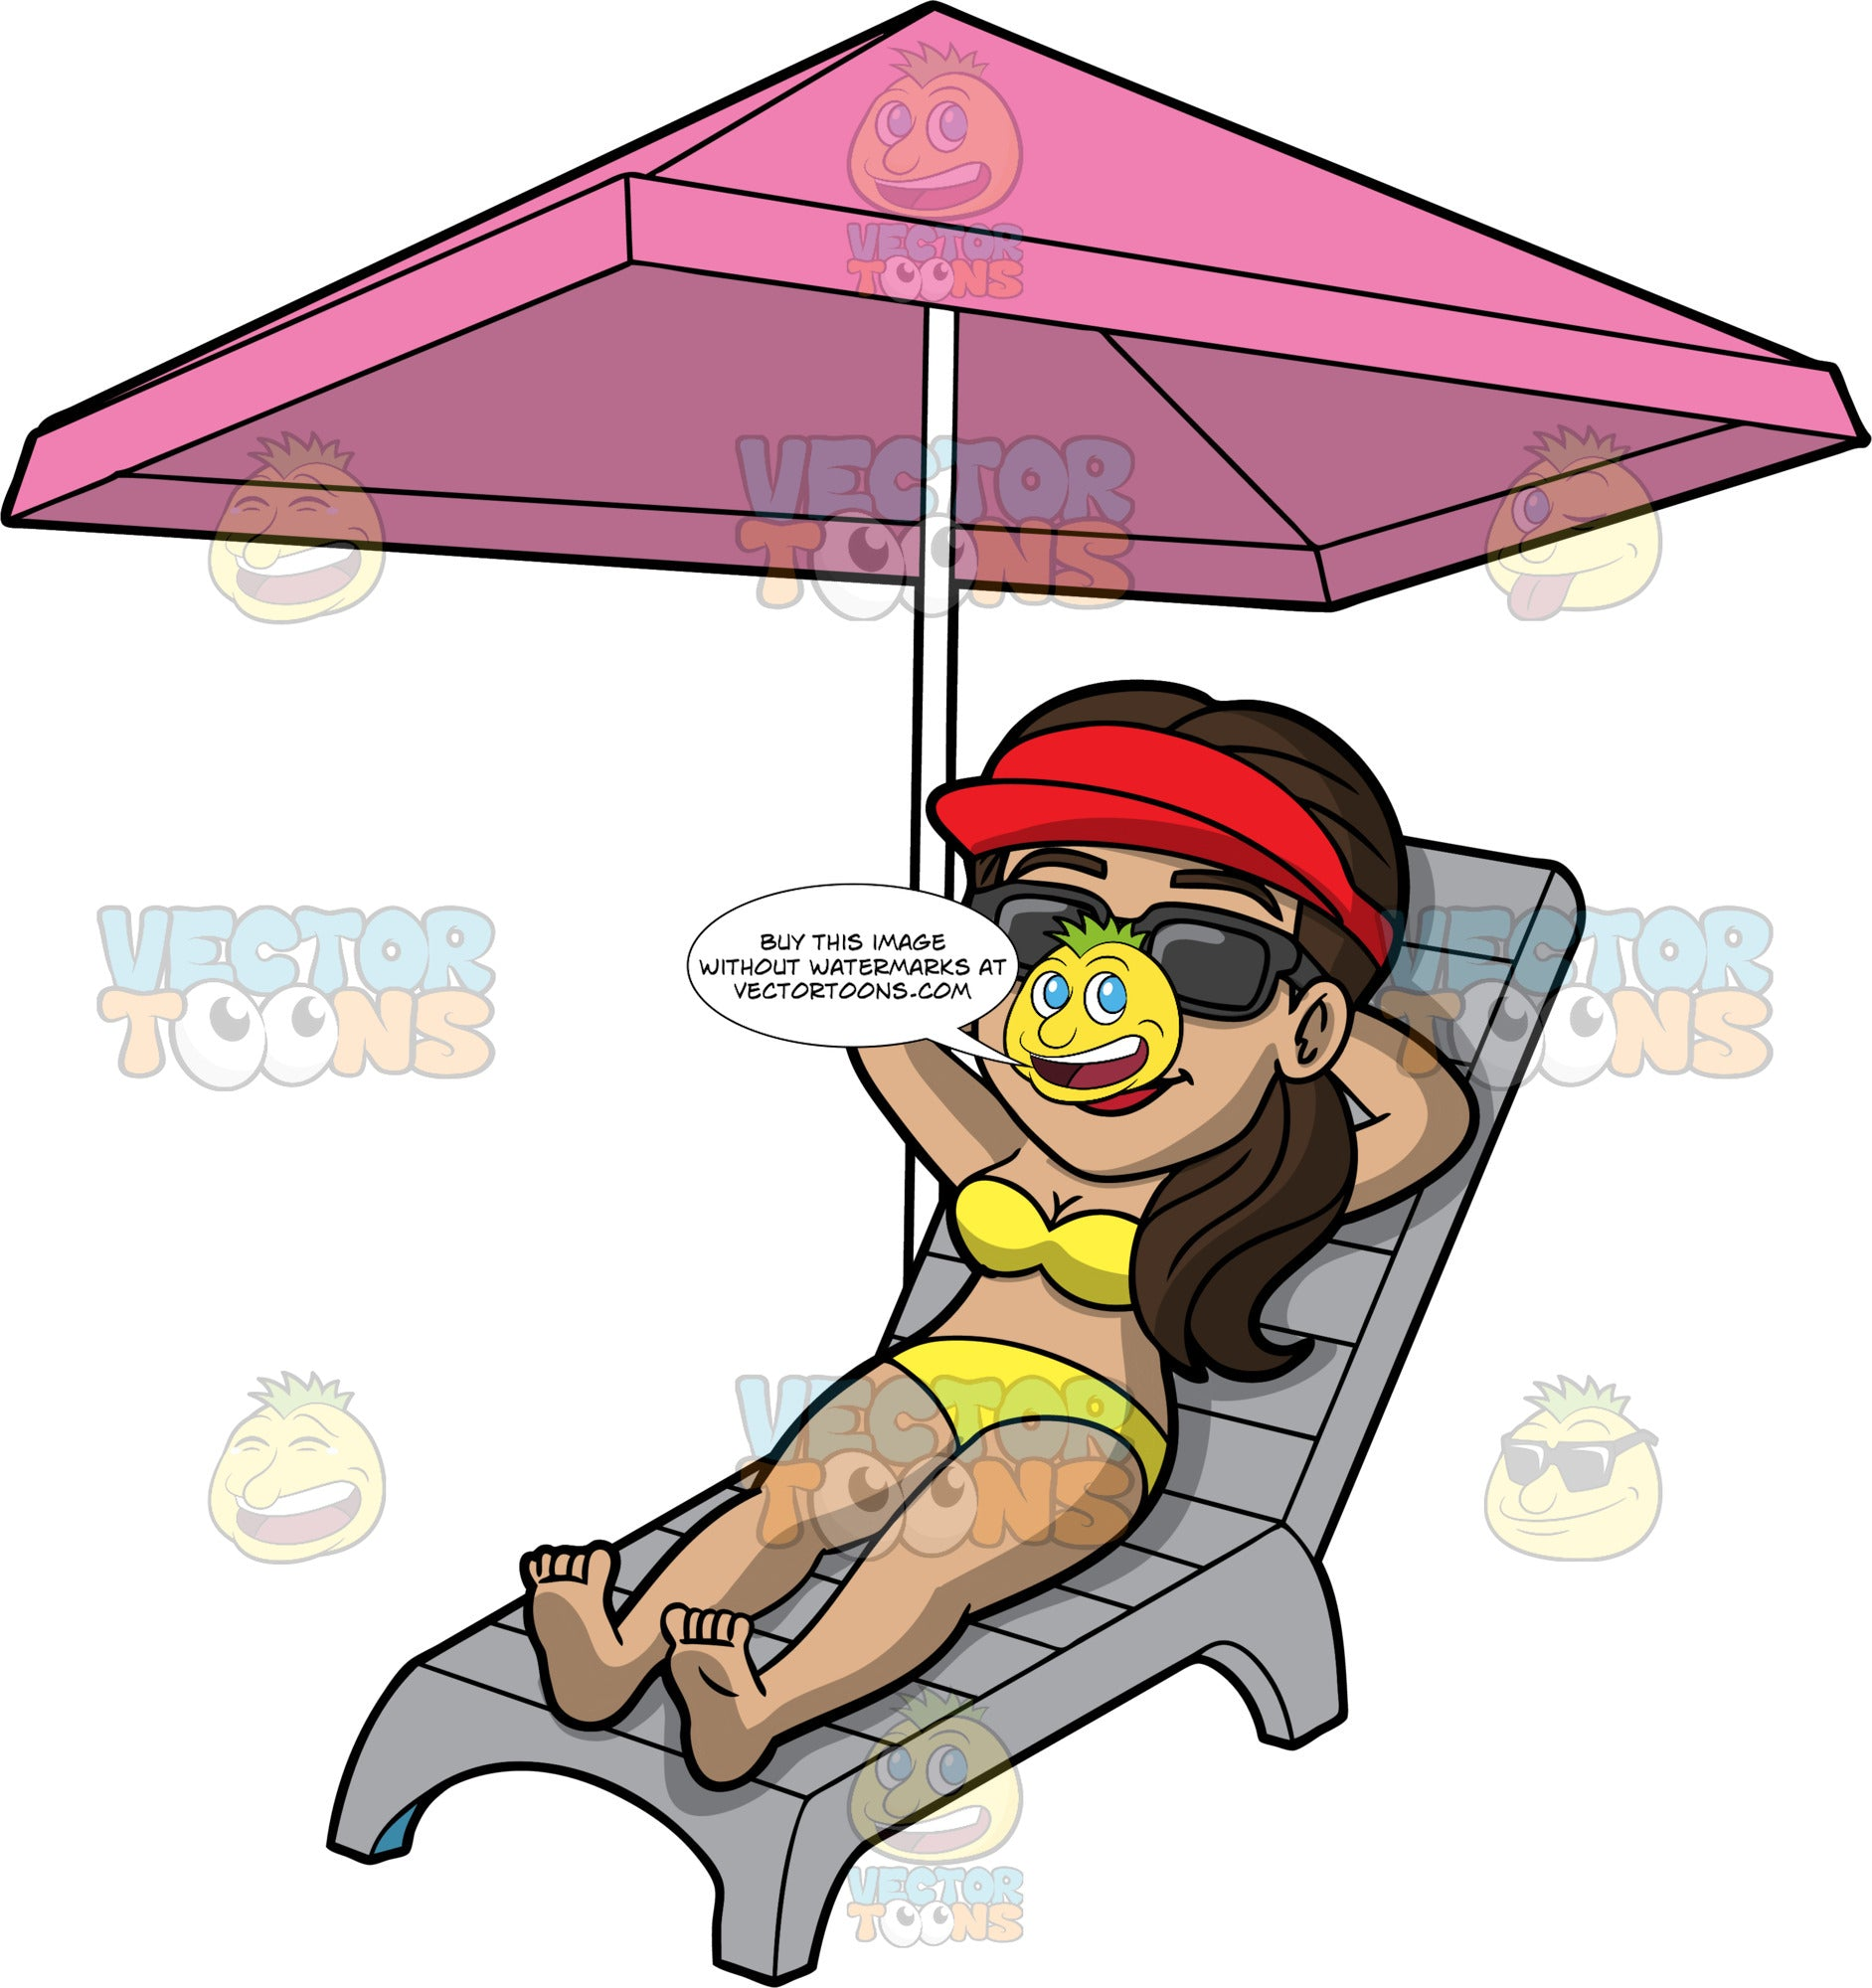 Isabella Sunbathing On A Summer Day. A Hispanic woman wearing a yellow bikini, red sun visor, and sunglasses, lying on a lounge chair under a pink umbrella with her arms behind her head